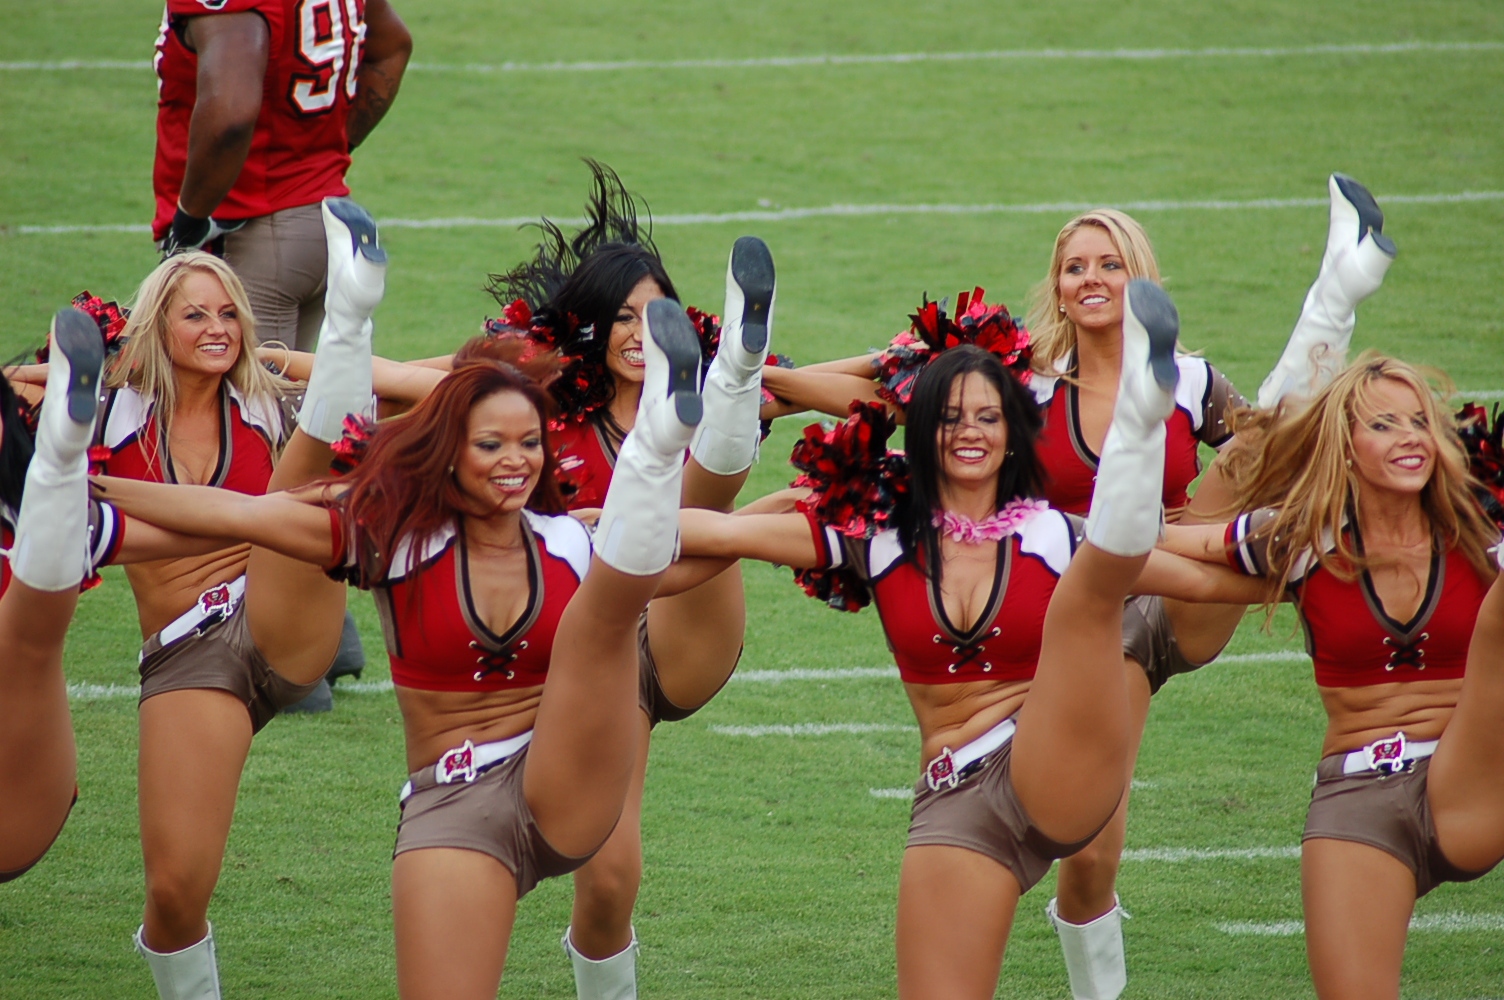 Tampa Bay cheerleaders1504